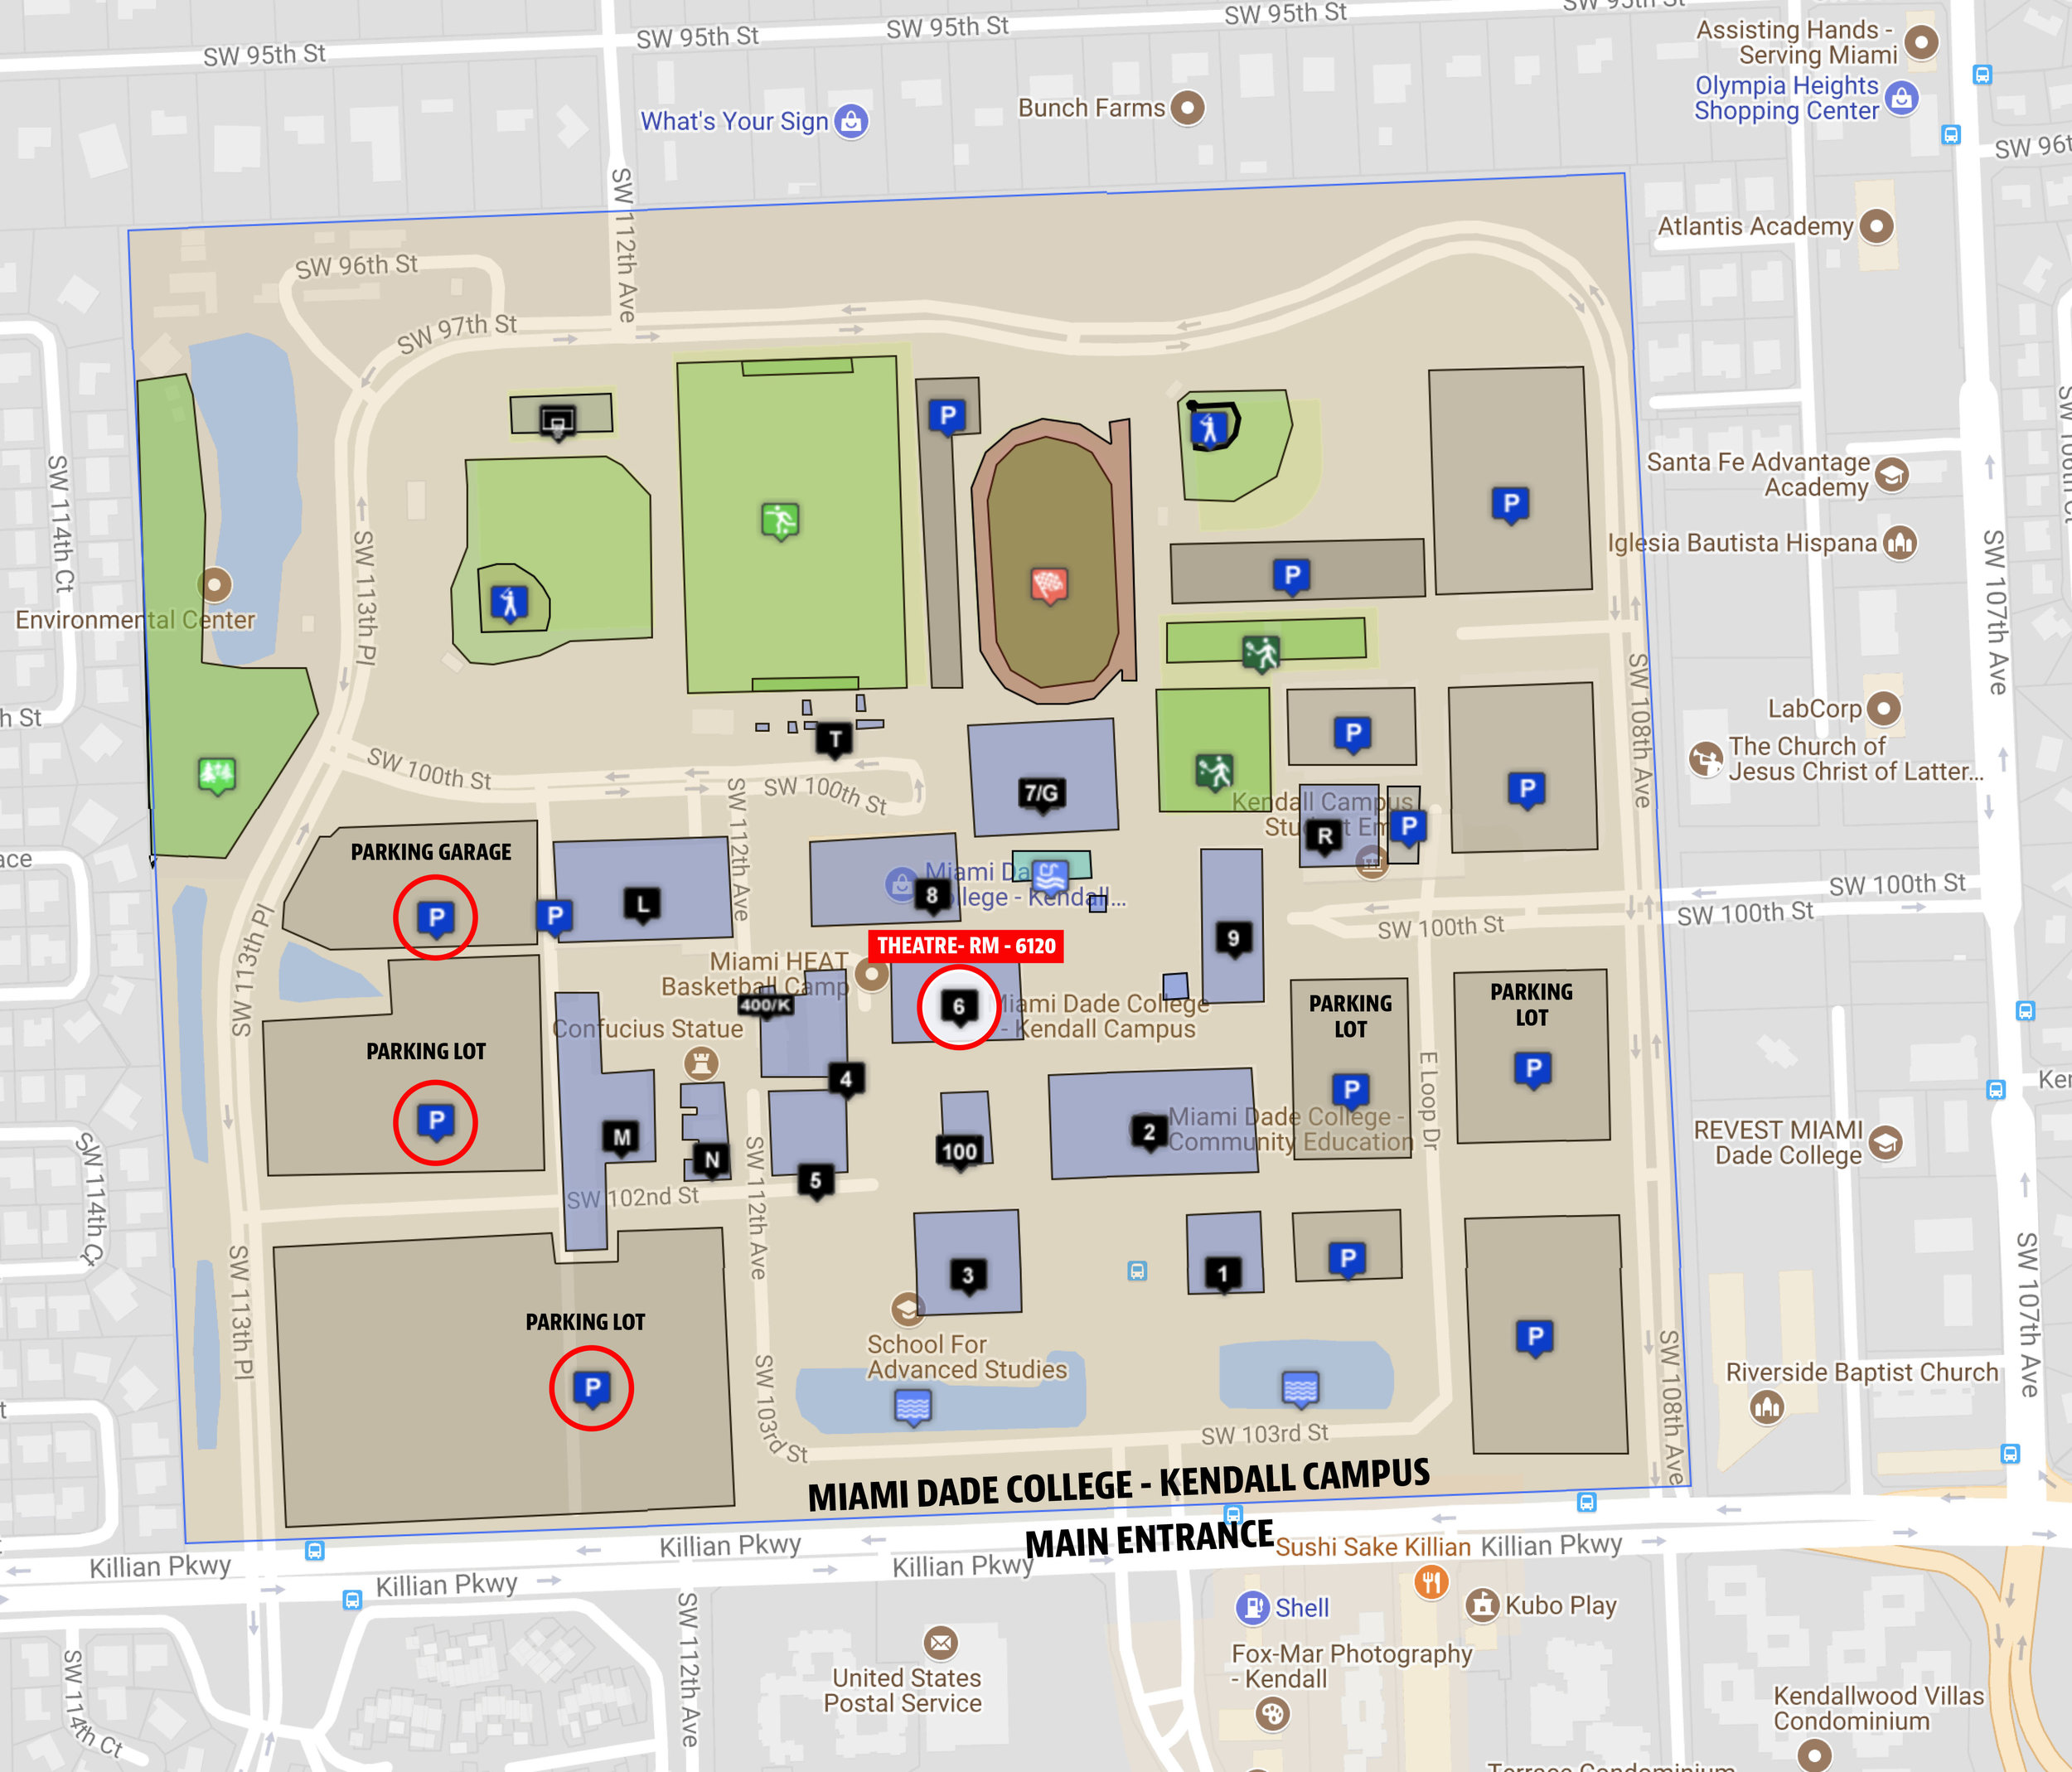 Campus map with theatre room highlighted and recommended parking areas